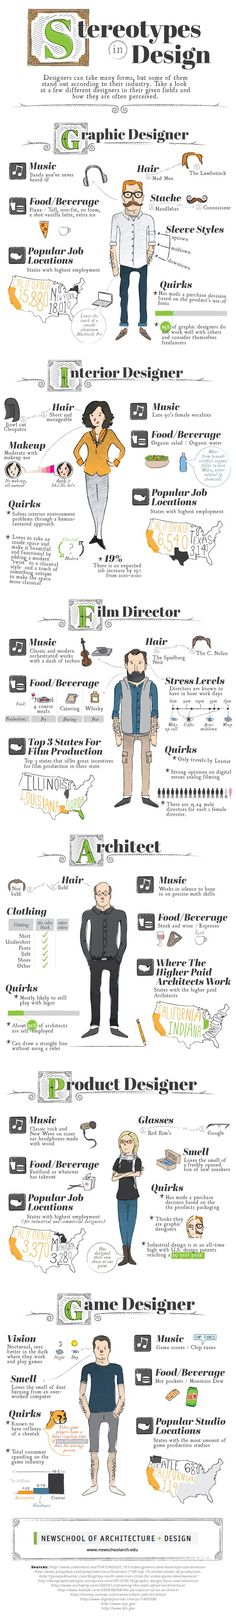 Popular designer stereotypes unveiled in this cheeky graphic - do you recognise yourself or your colleagues?